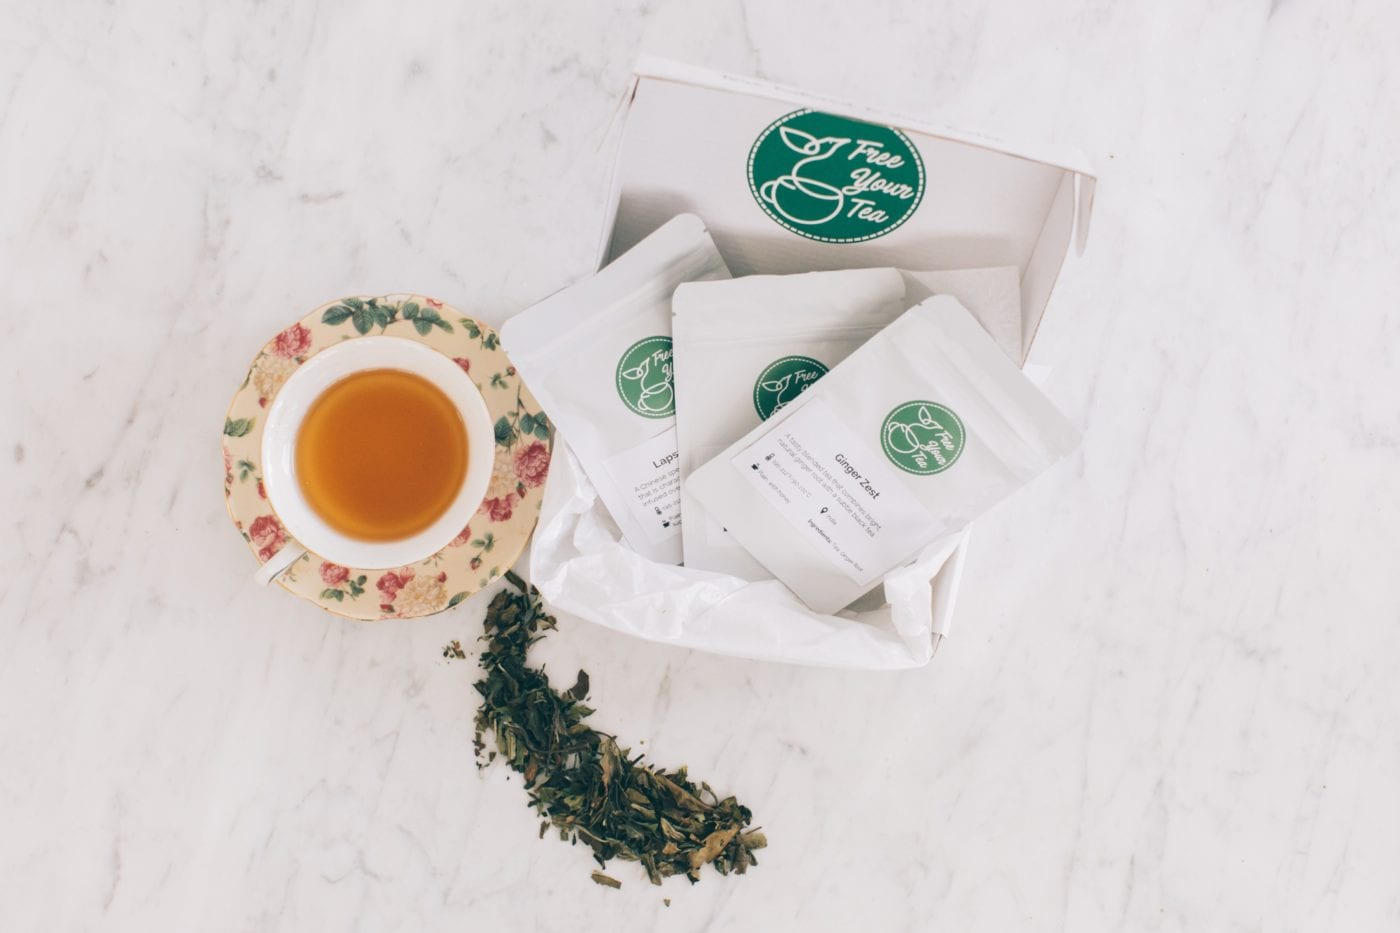 Free Your Tea Sampler